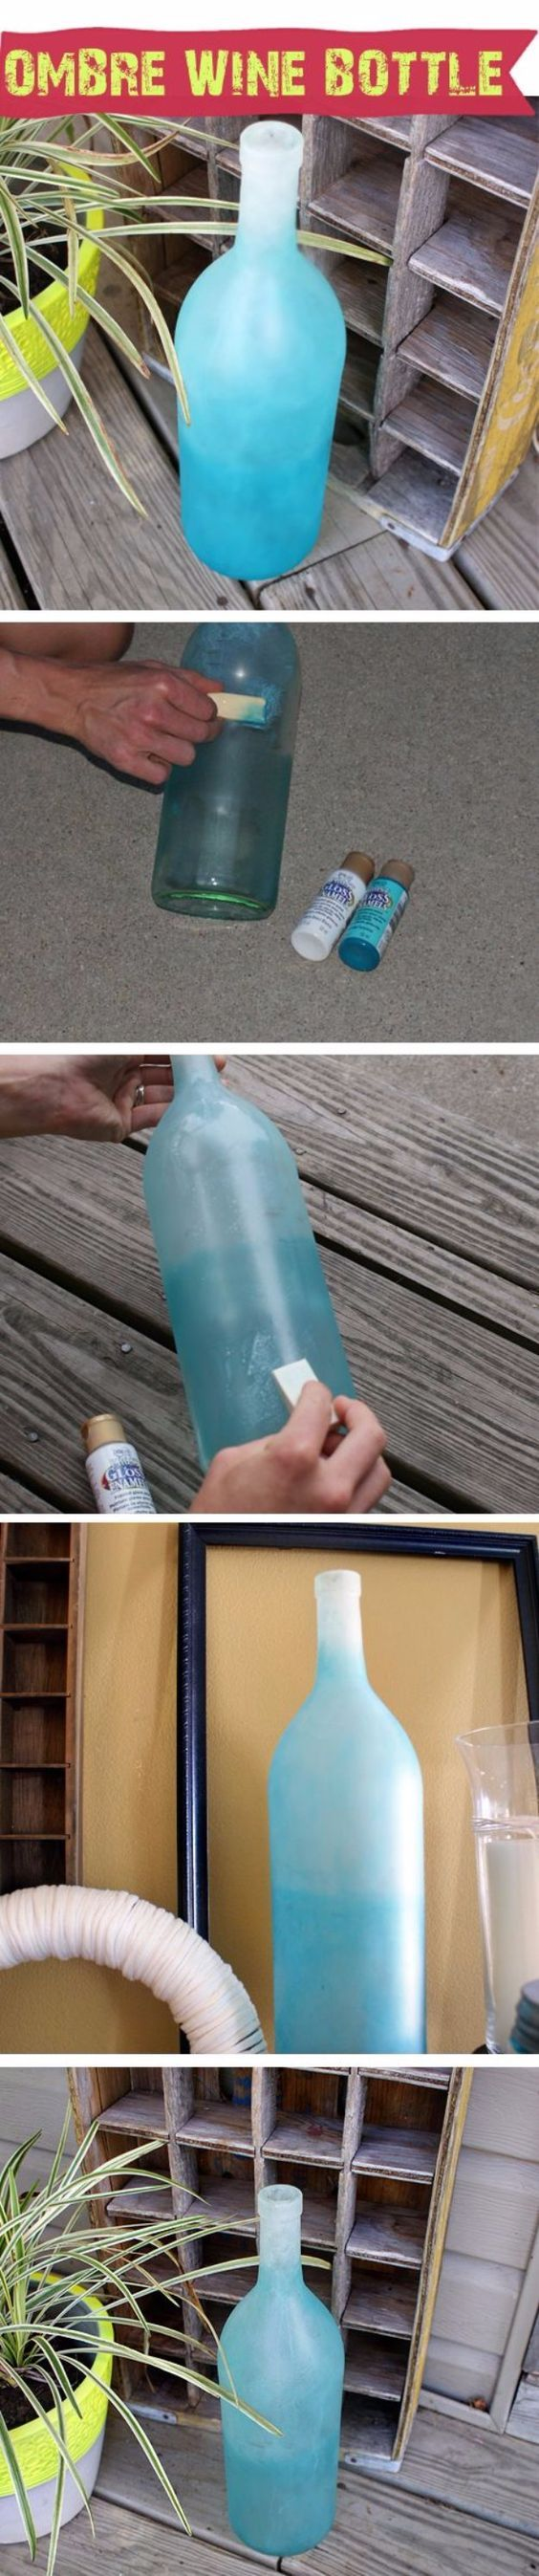 Best 25 wine bottle cutting ideas on pinterest cutting for Easy way to cut wine bottles